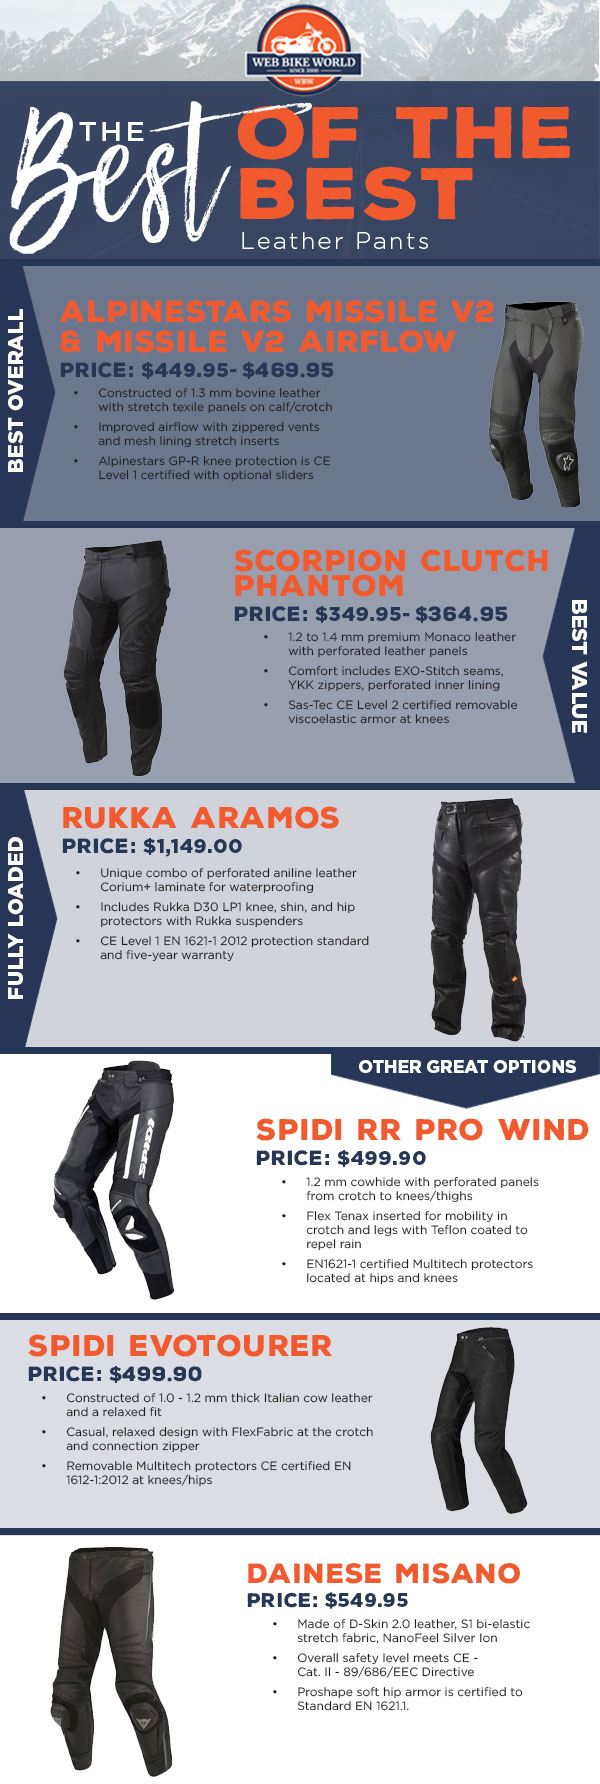 The Best Leather Pants Infographic 2019